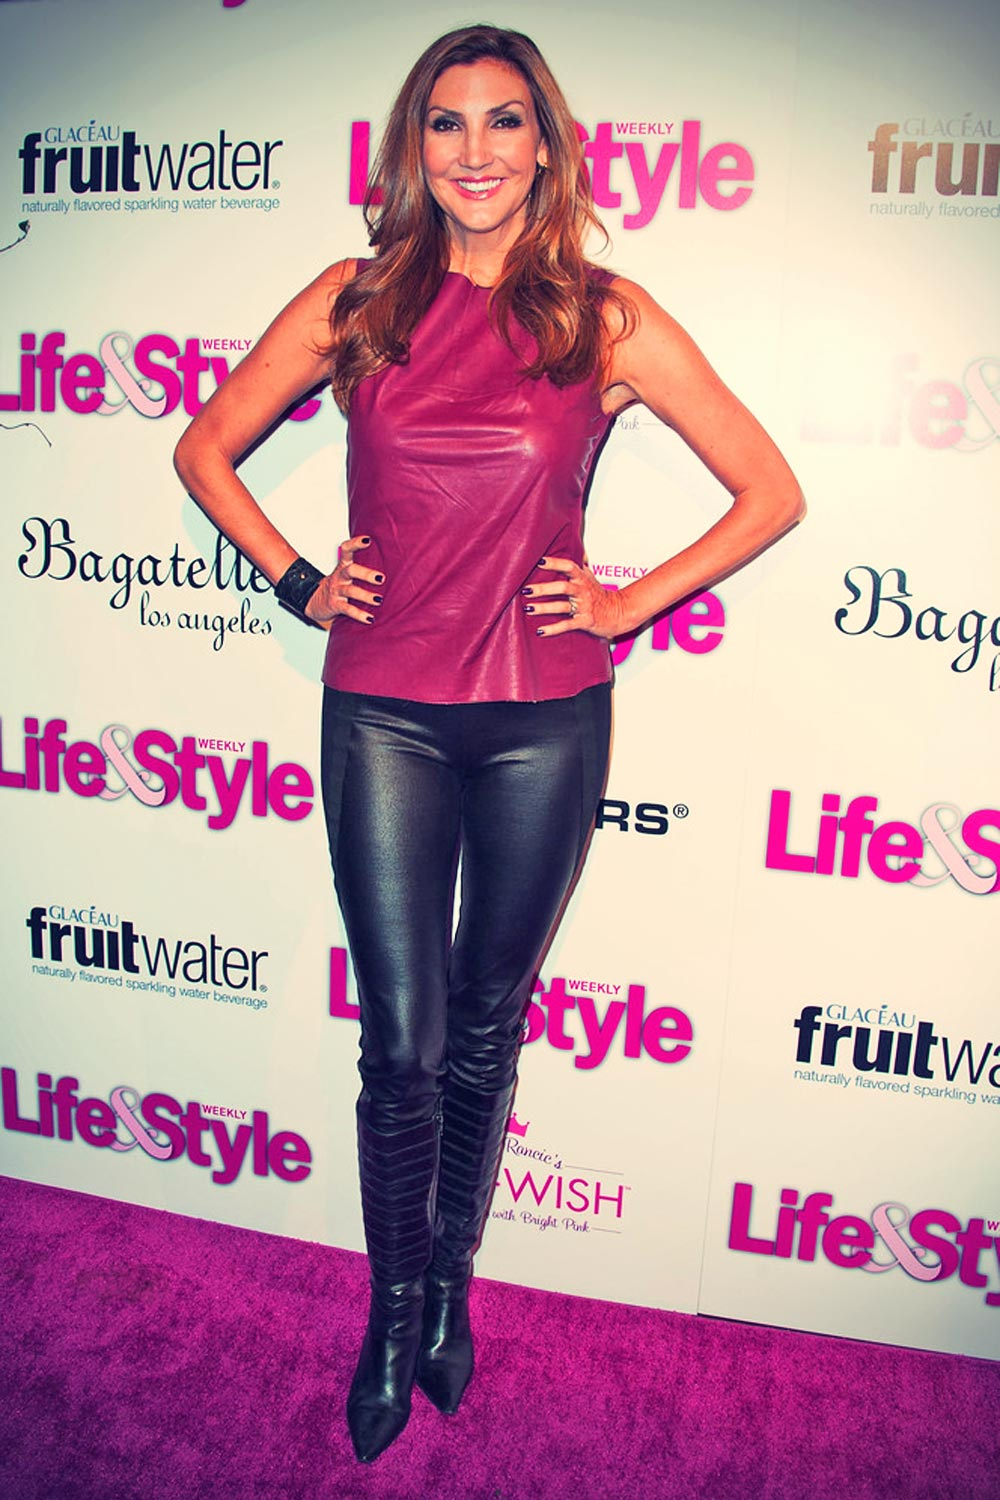 Heather McDonald attends Life & Style's Hollywood in bright pink event